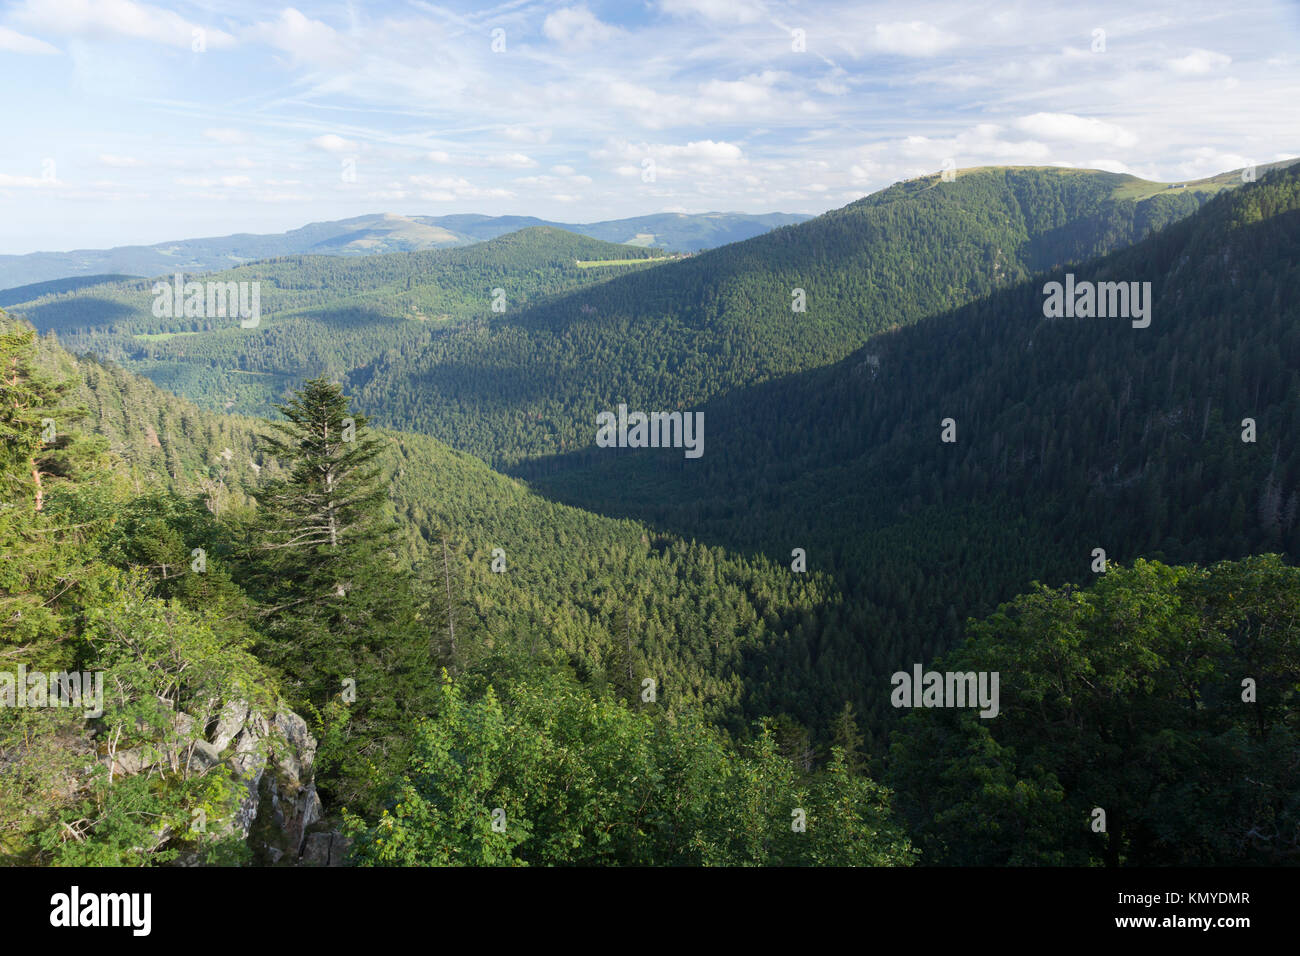 The rounded summits (ballons) of the Parc naturel régional des Ballons des Vosges, popular for driving tours - Stock Image